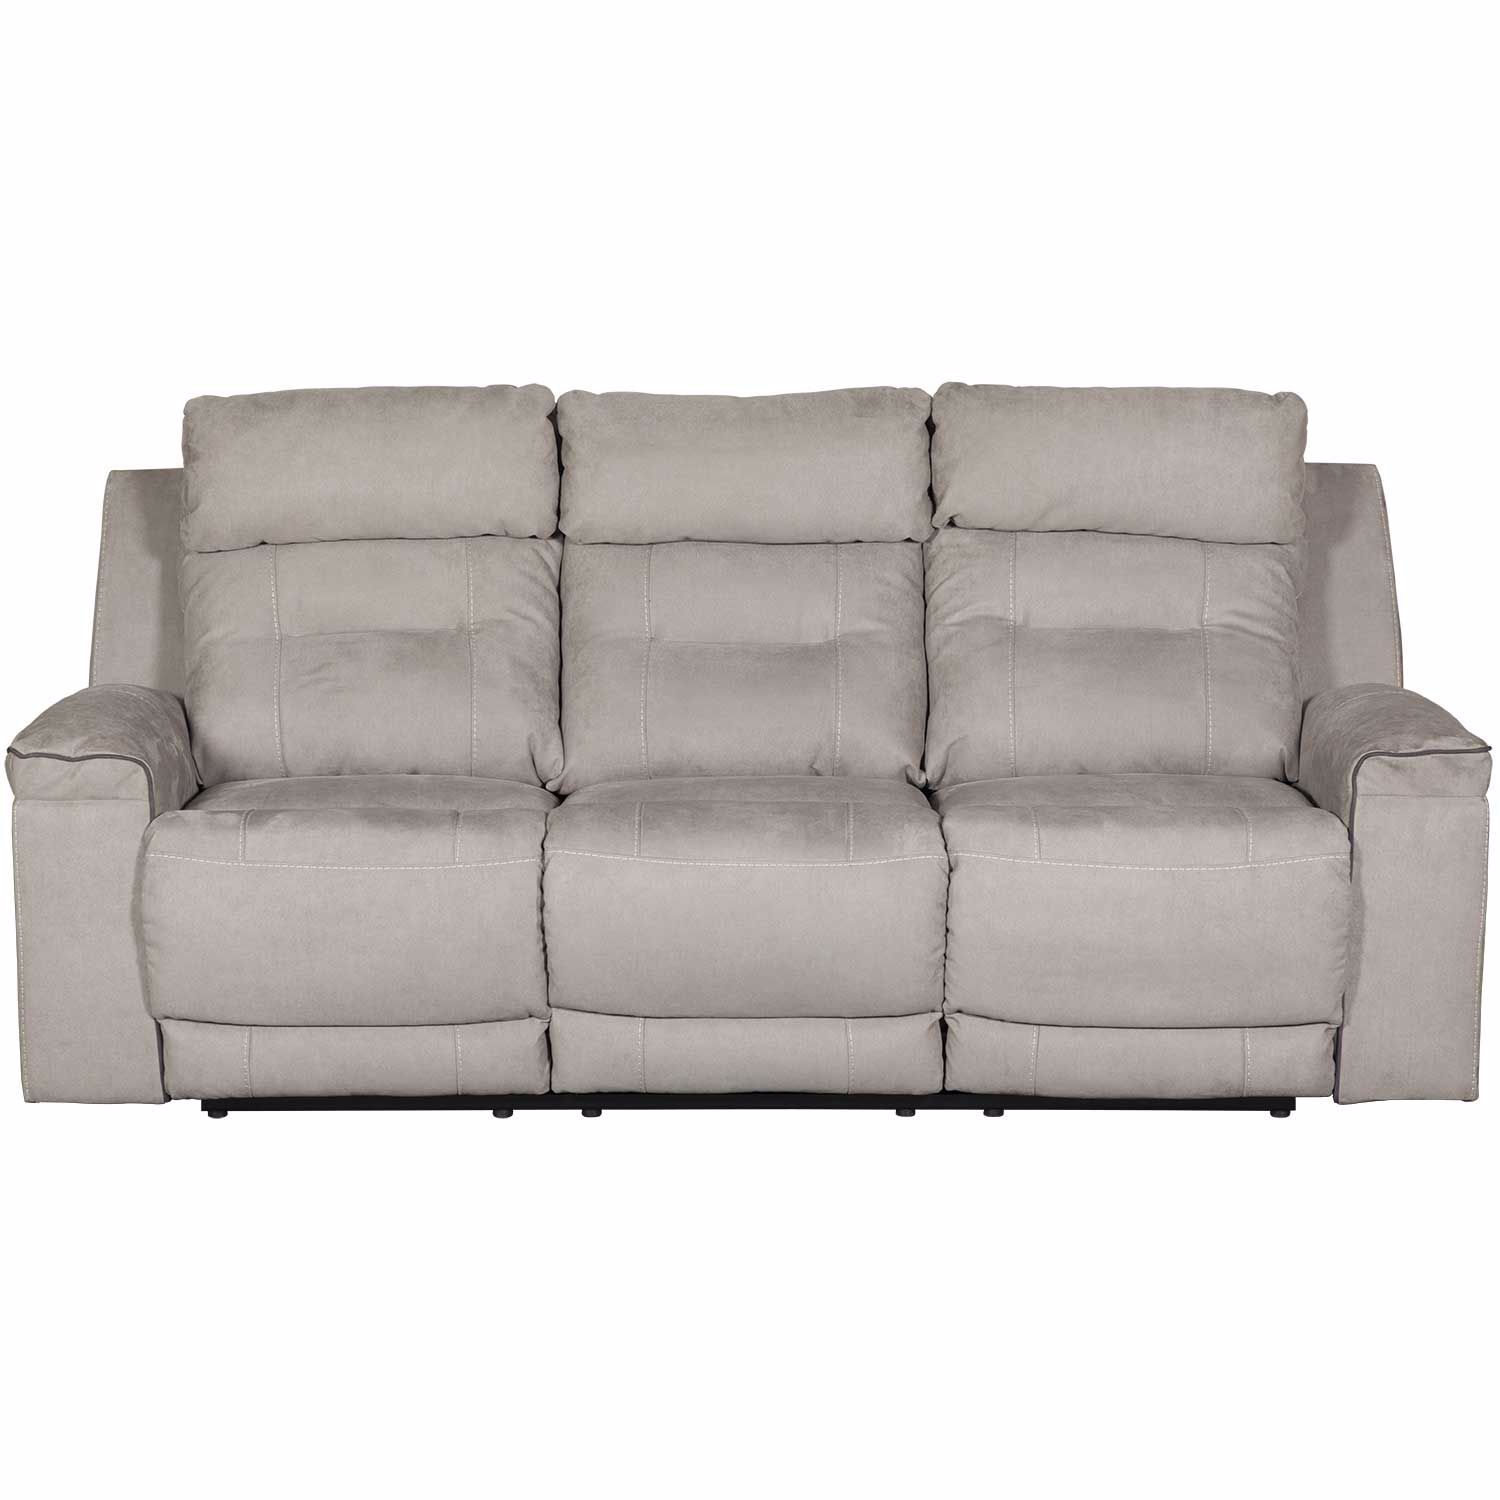 Picture Of Trampton Reclining Sofa With Headrest And Lumbar